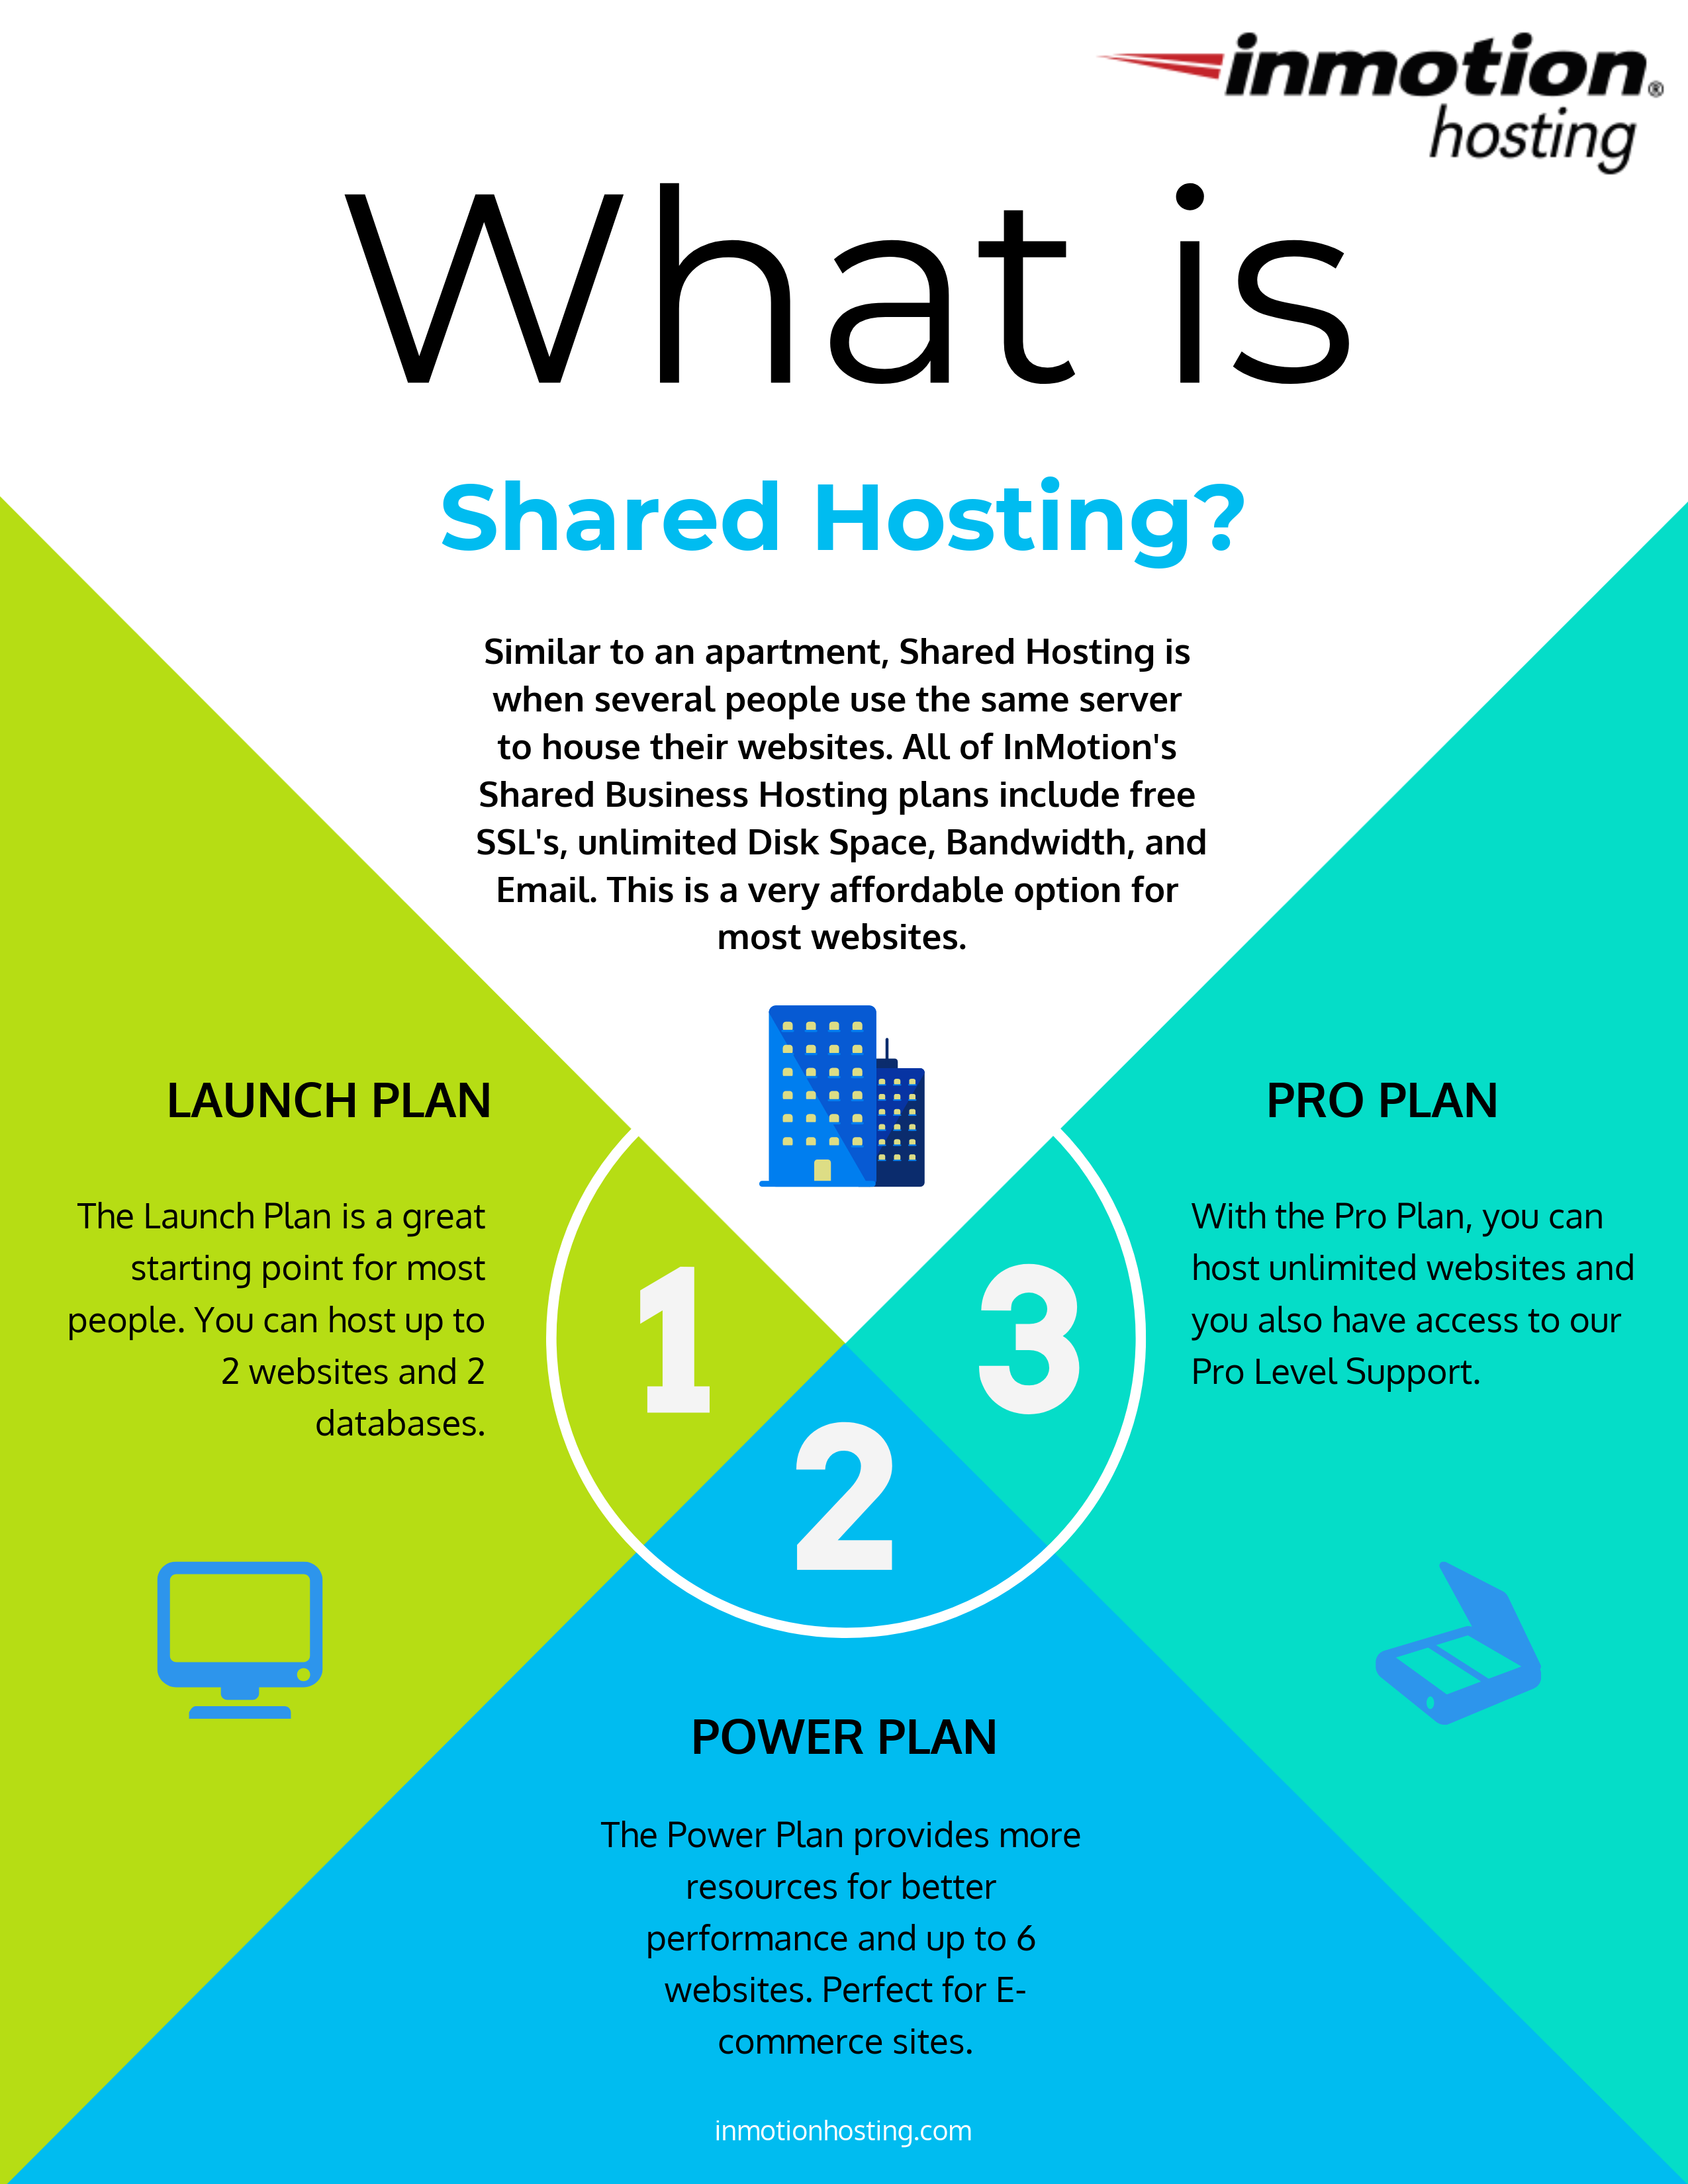 Getting know Shared hosting at InMotion Hosting